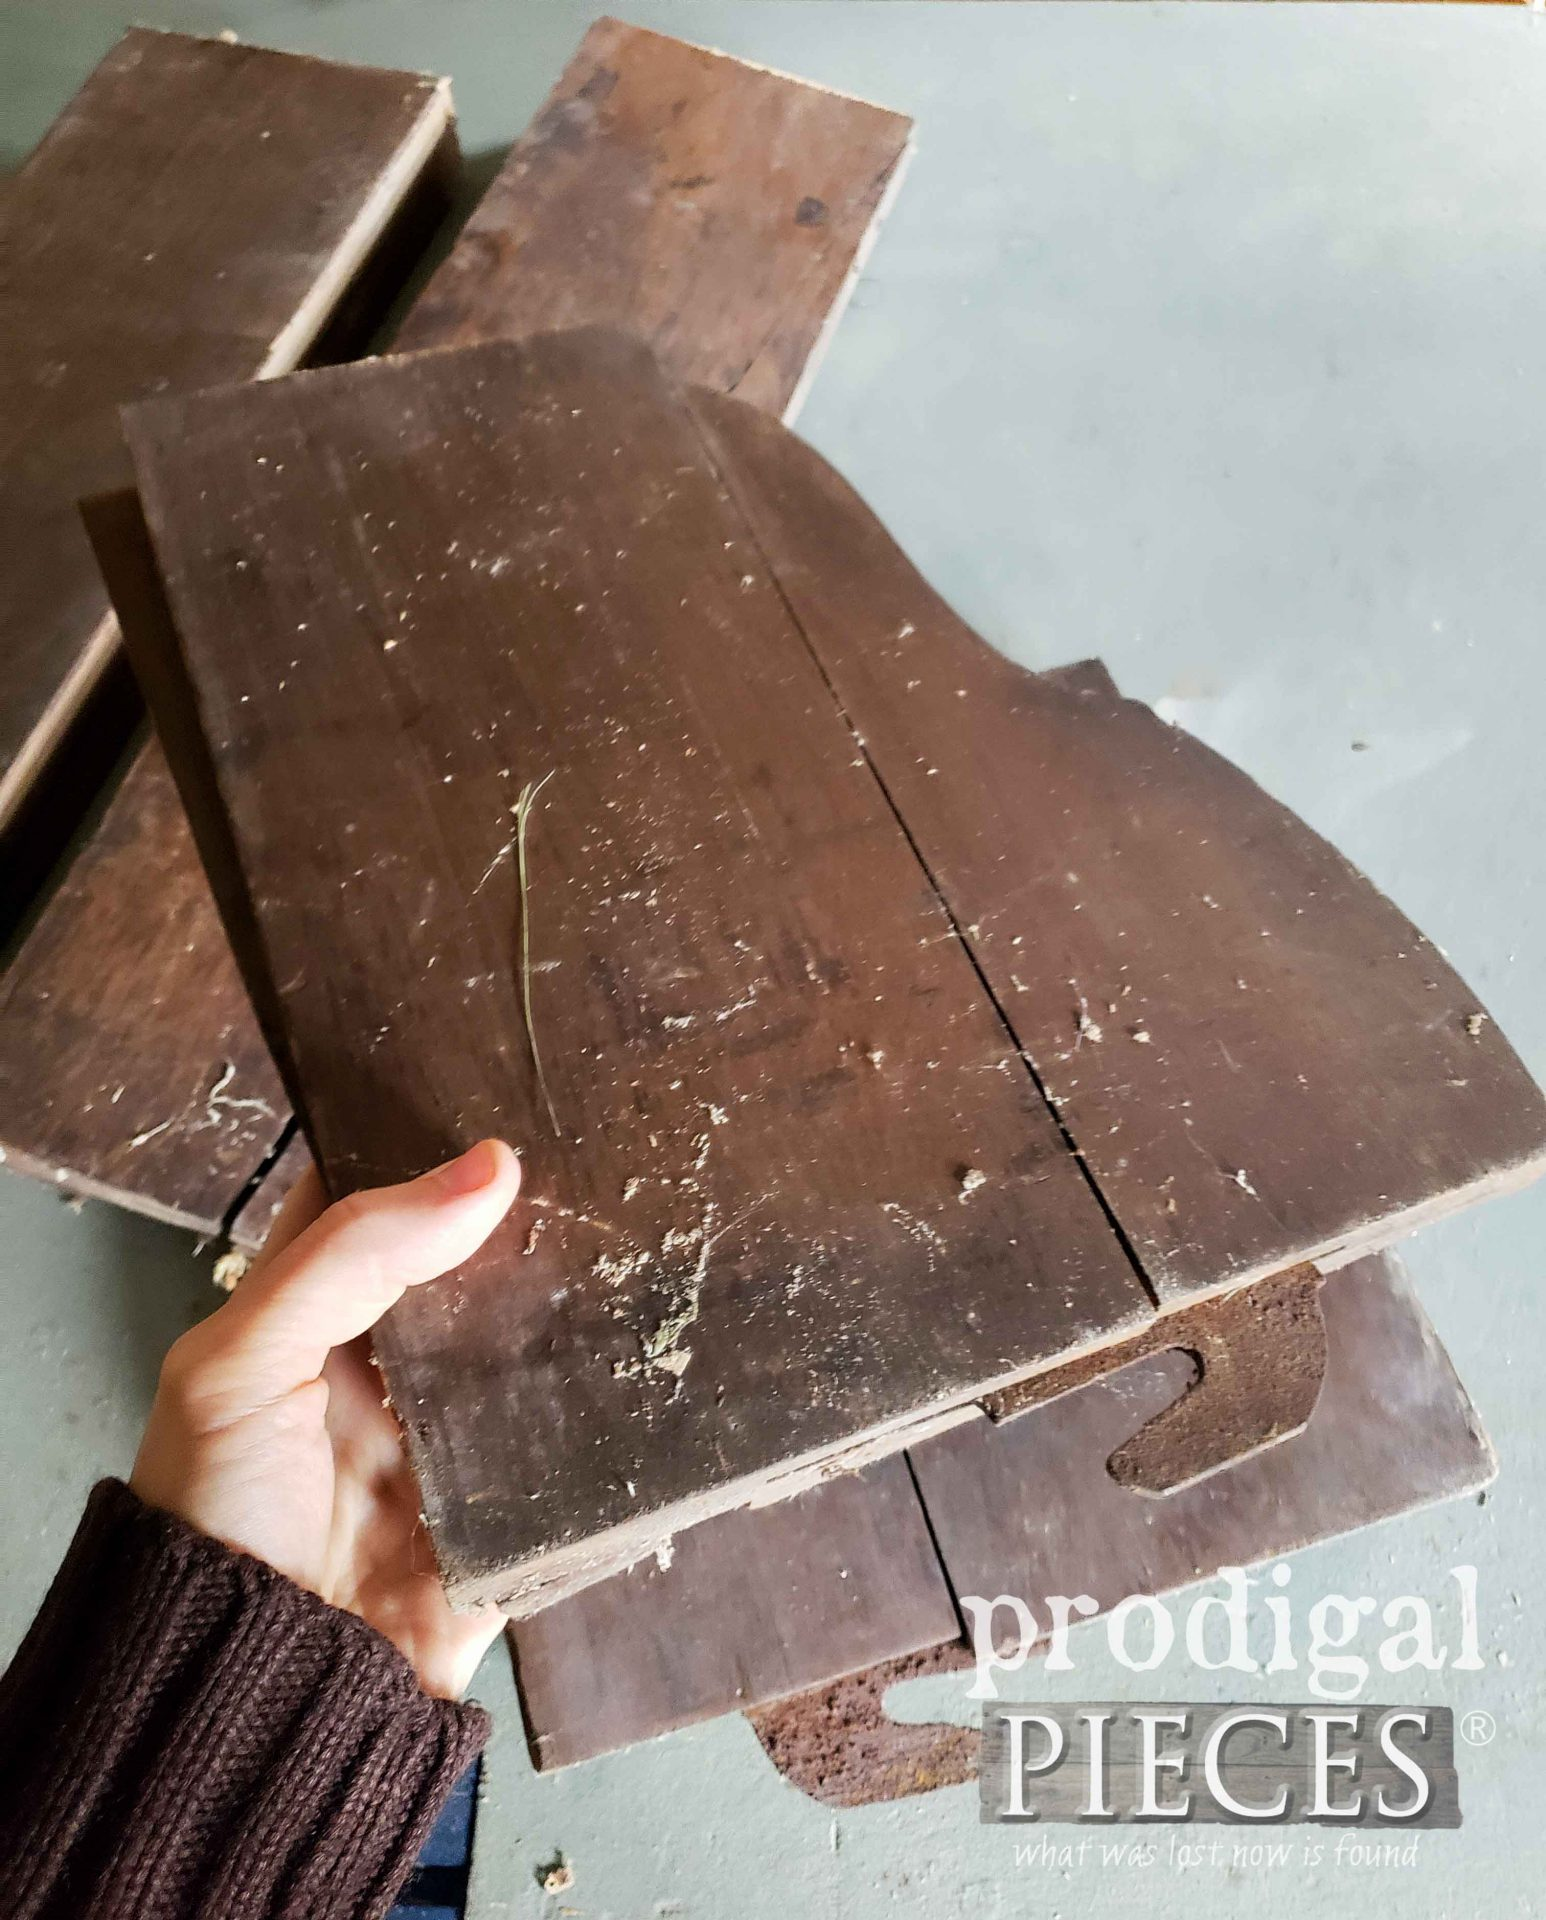 Salvaged Antique Bed Rails | Prodigal Pieces | prodigalpieces.com #prodigalpieces